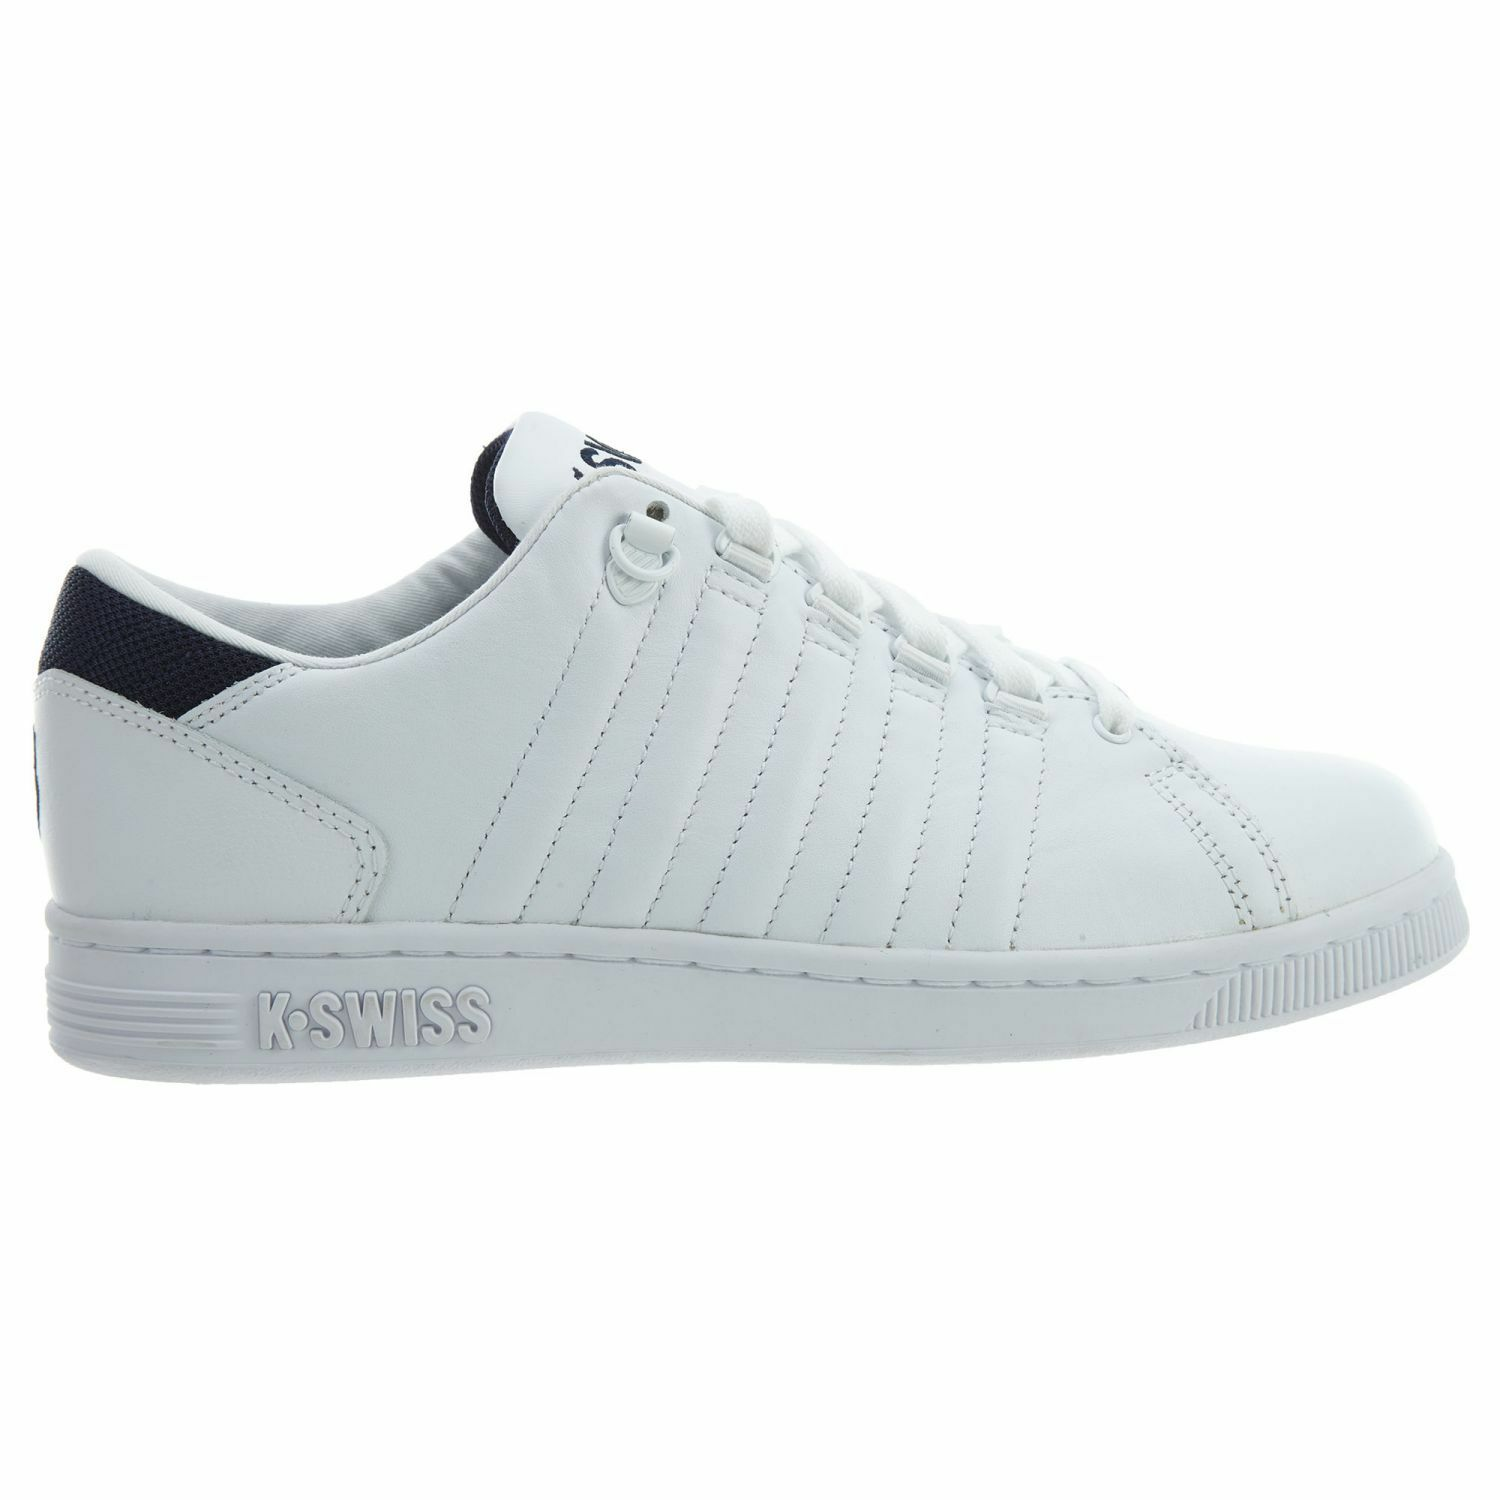 K-Swiss Lozan III TT Mens 05398-109 White Navy Leather Athletic shoes Size 7.5